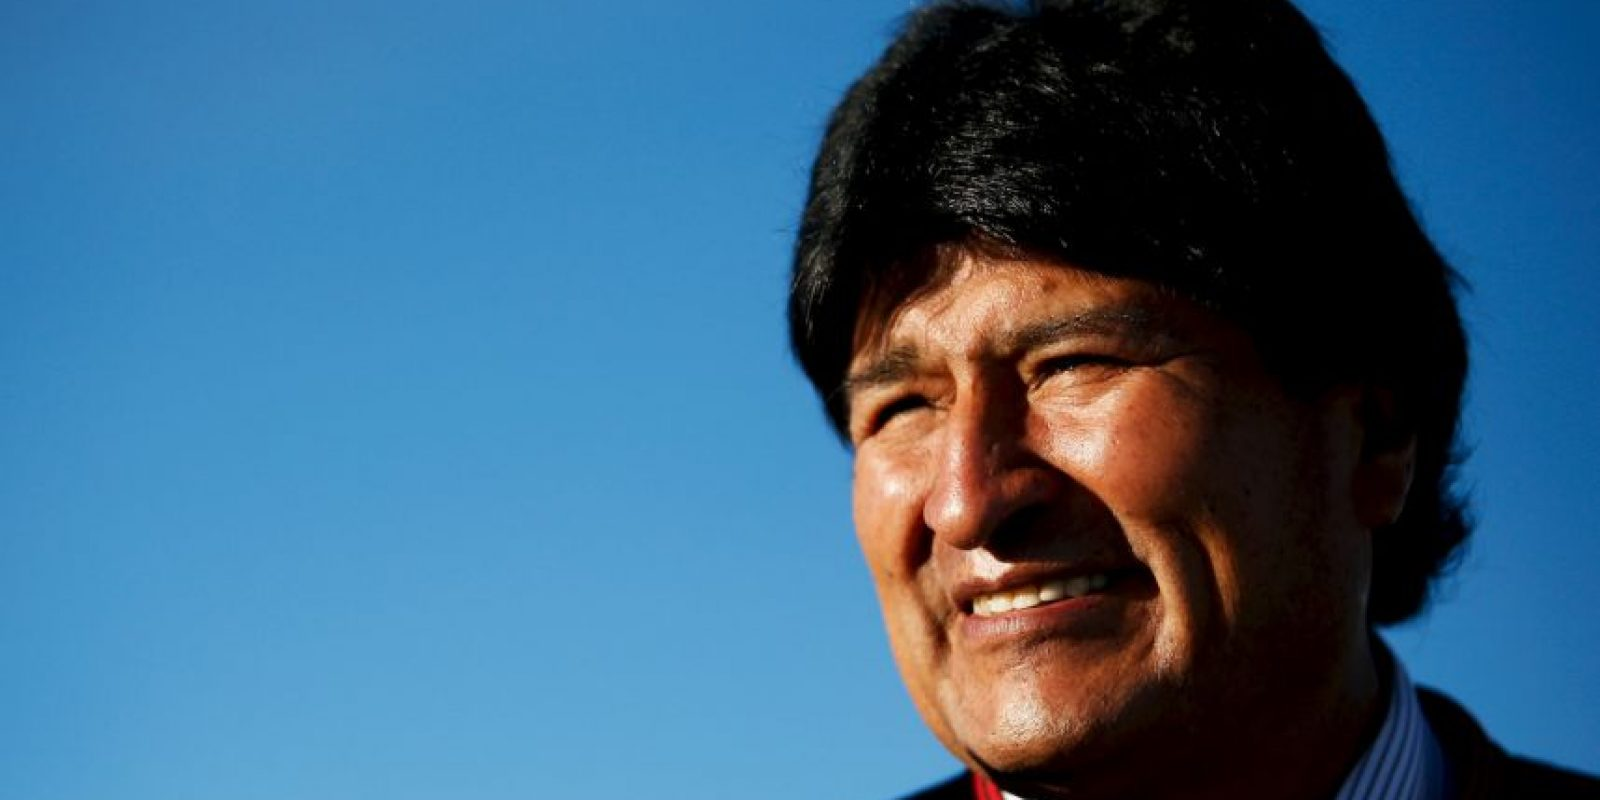 Evo Morales, 2015 Foto: Getty Images